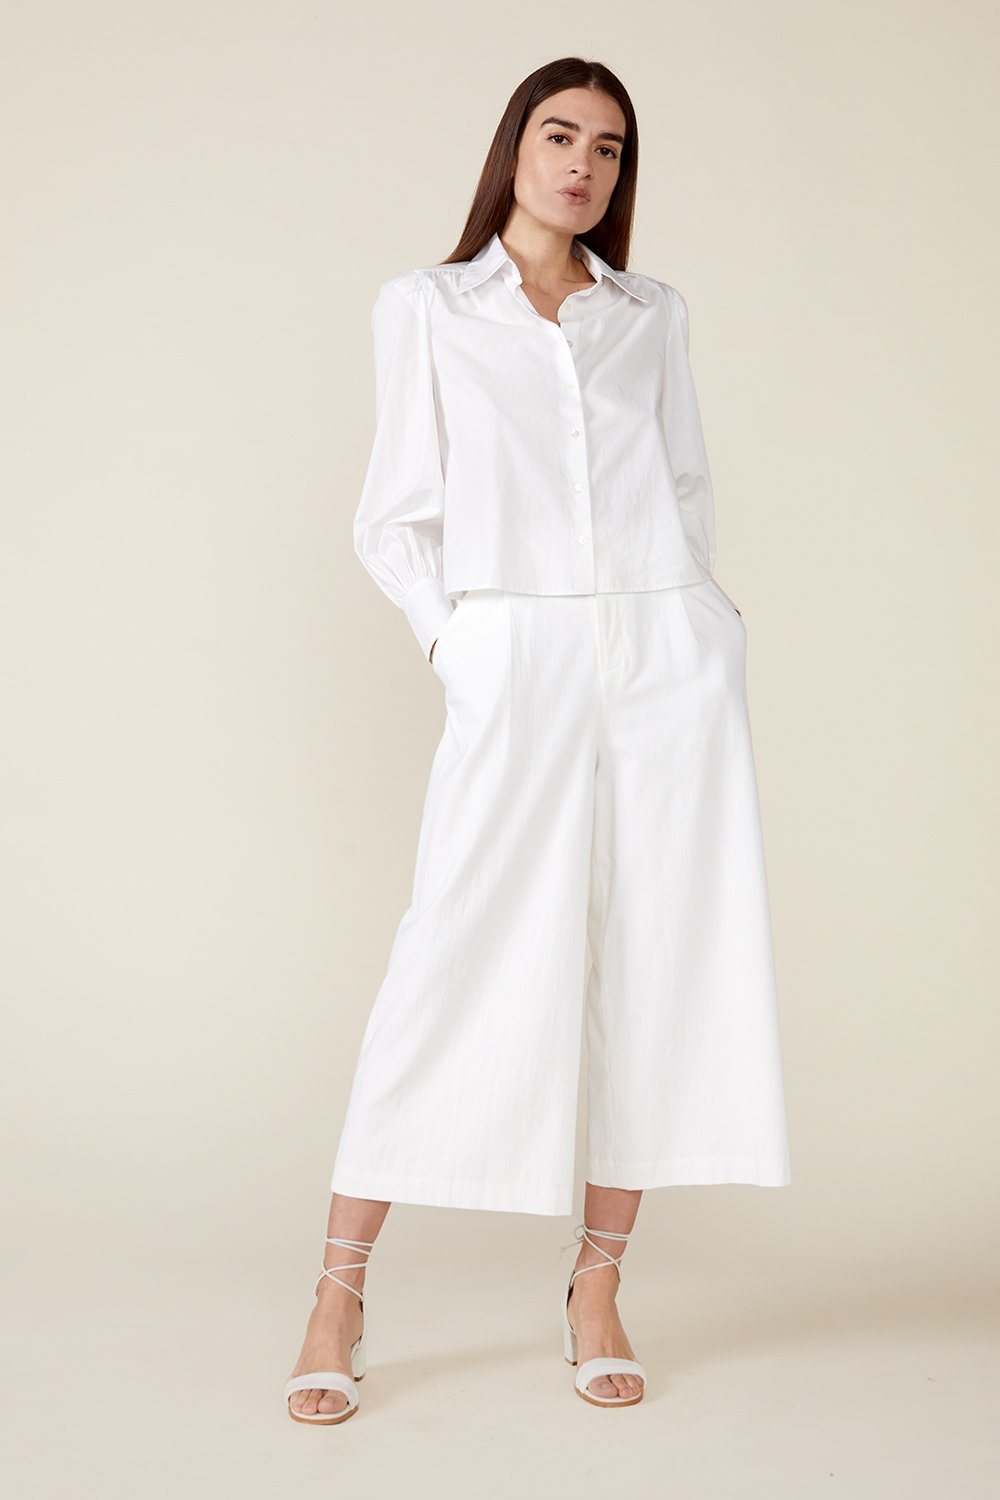 VITA BLOUSE, WHITE by St. Roche - 4